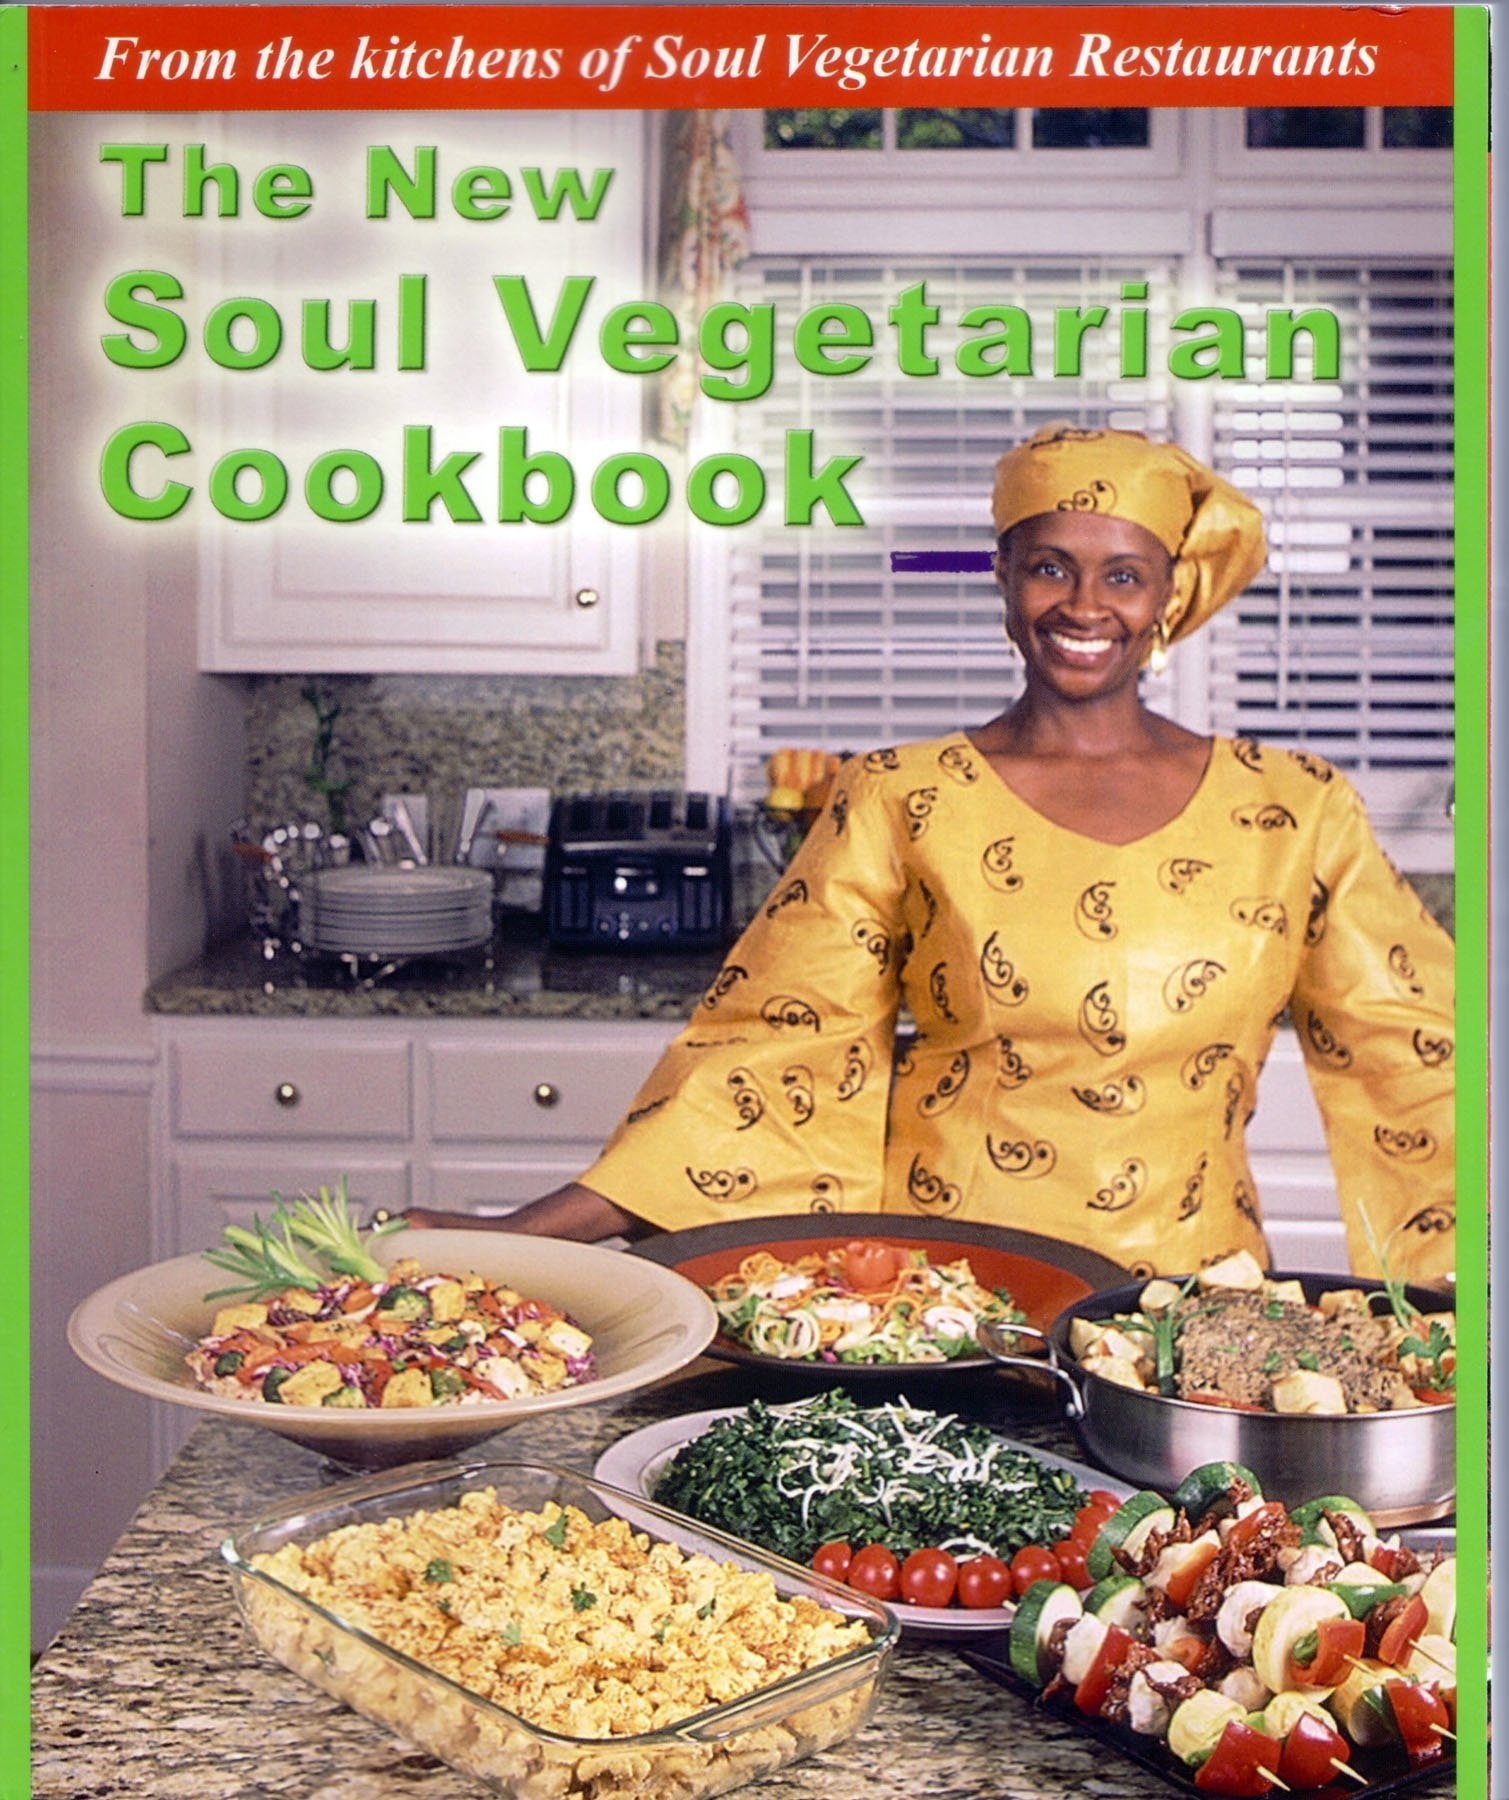 The new soul vegetarian cookbook yafah asiel 9780942683134 amazon the new soul vegetarian cookbook yafah asiel 9780942683134 amazon books forumfinder Images